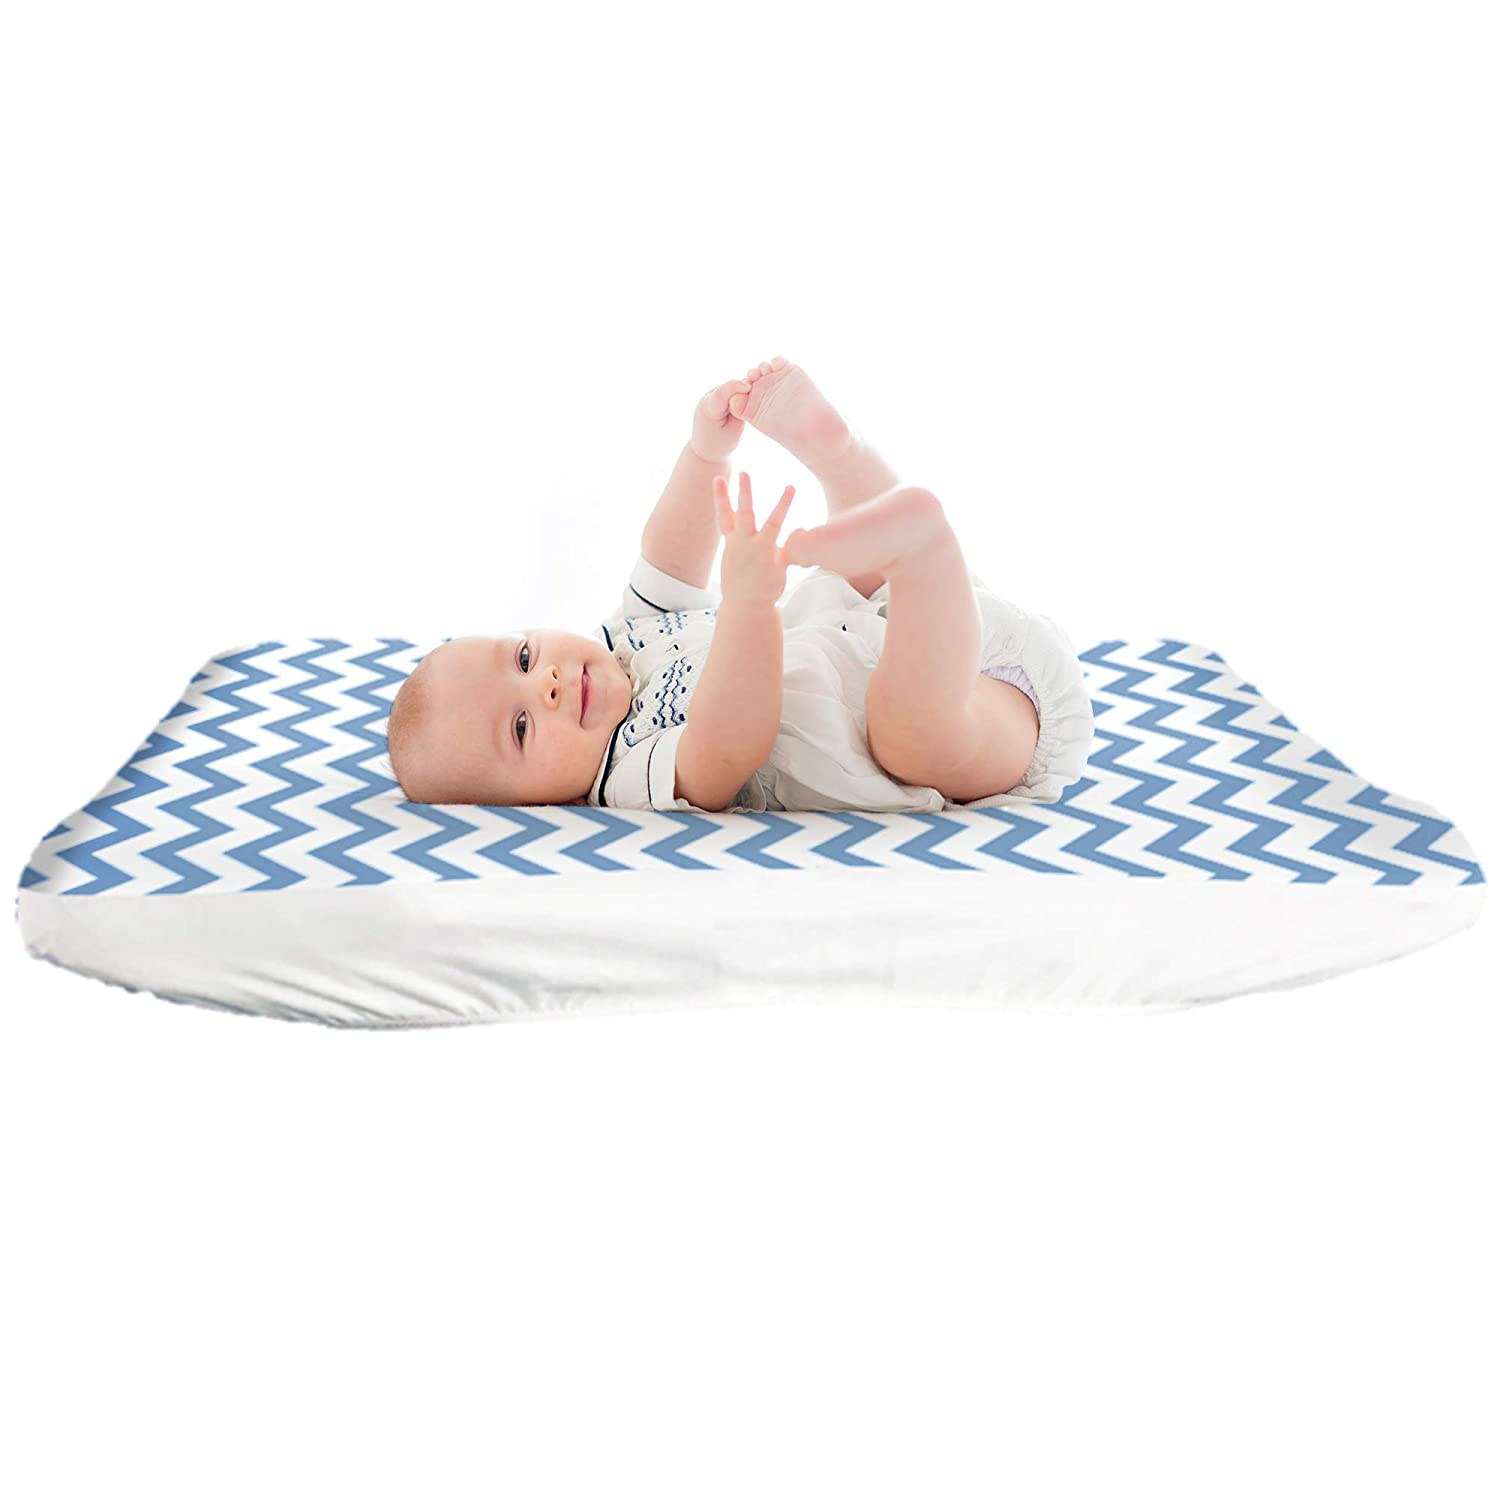 Lessy National products sale Messy Leak-Proof Diaper Changing Cover Pad Chevron Print